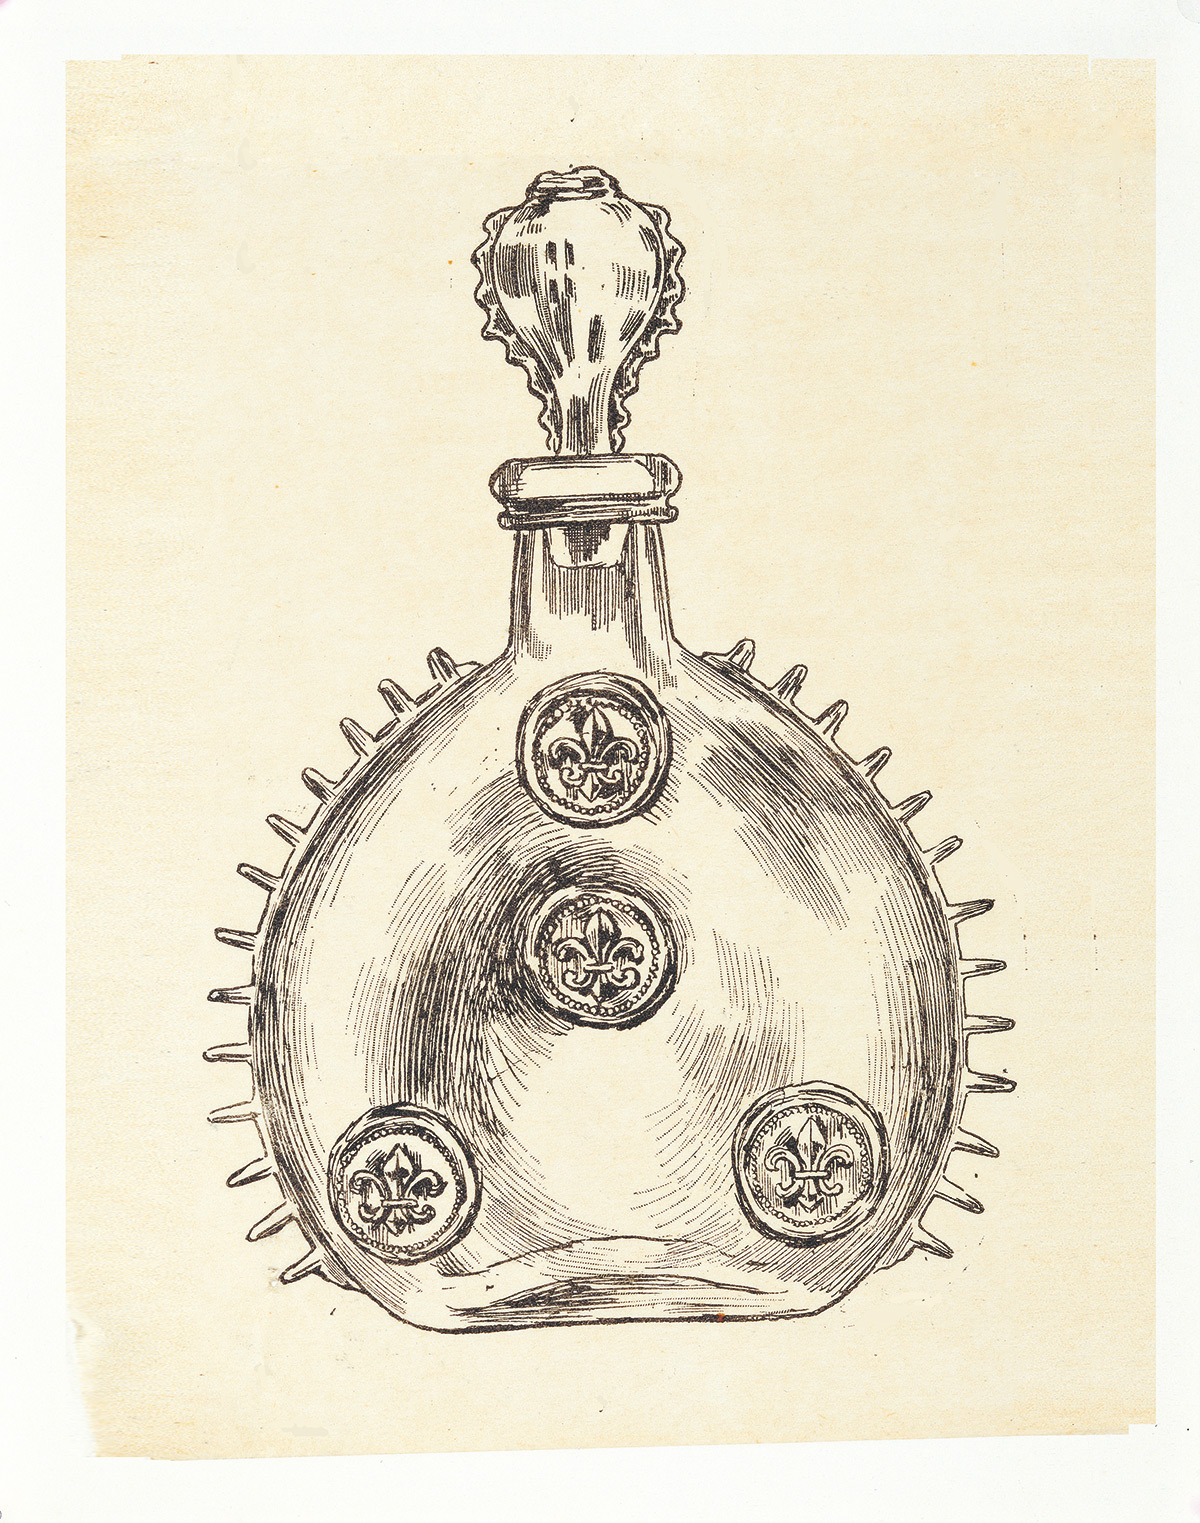 Drawing of the LOUIS XIII decanter from 1850